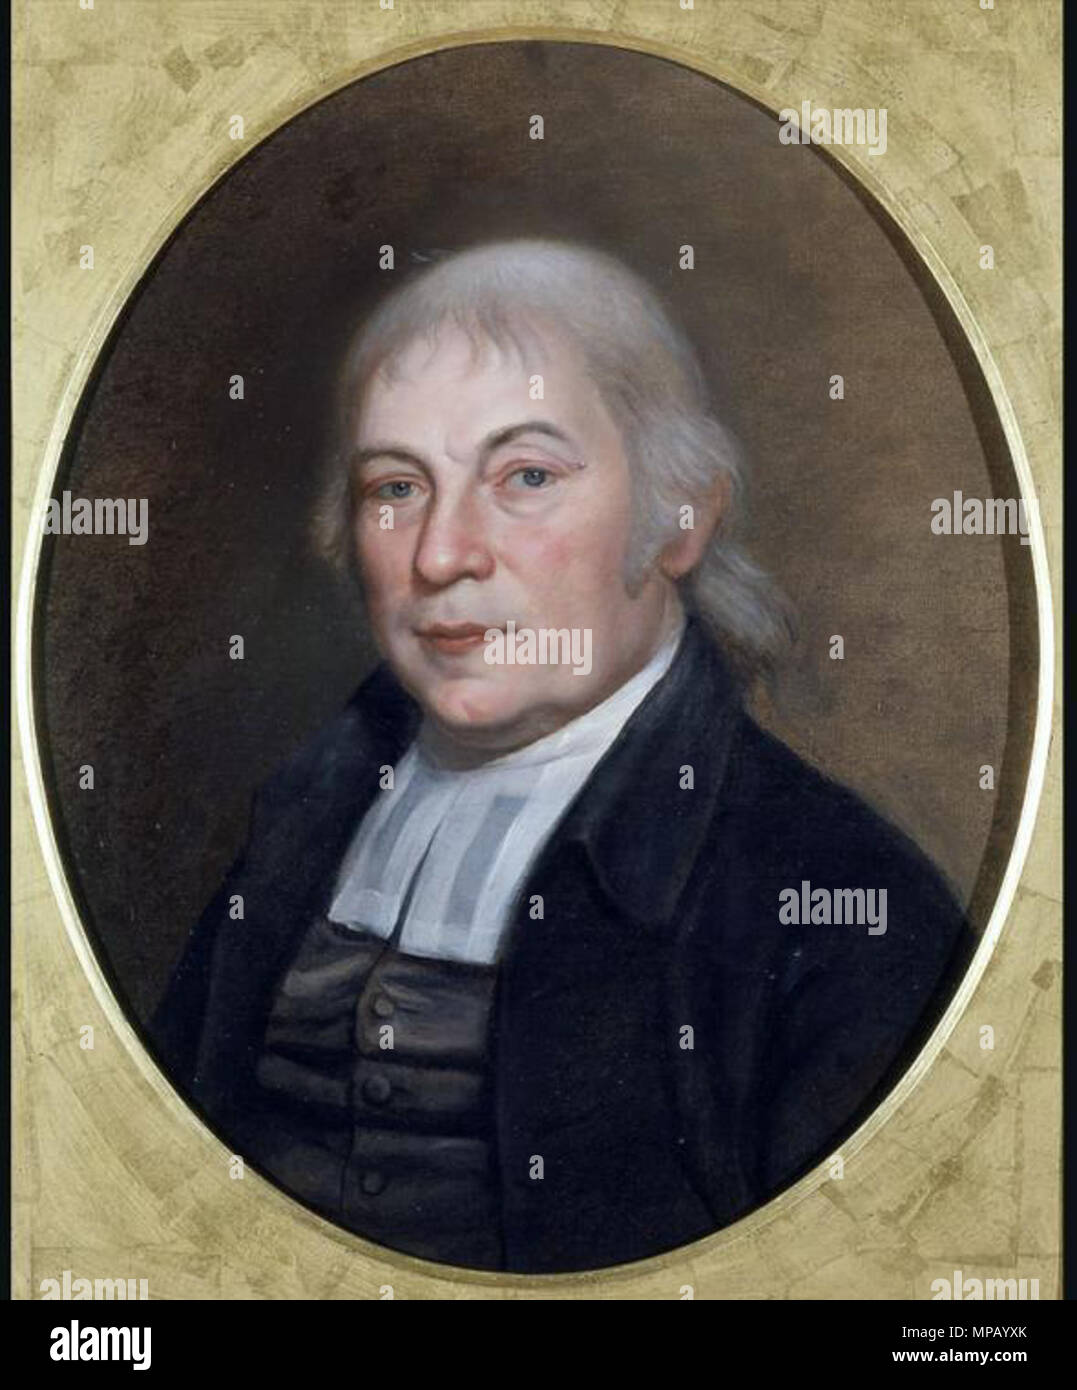 .  English: Portrait of w:en:Gotthilf Heinrich Ernst Muhlenberg . 1810.    Charles Willson Peale  (1741–1827)     Description American portrait painter  Date of birth/death 15 April 1741 22 February 1827  Location of birth/death St. Paul's Parish, Maryland Philadelphia  Work location Deutsch: Nordamerikanische Ostküste English: East coast of North America  Authority control  : Q454945 VIAF: 72190360 ISNI: 0000 0000 8262 3463 ULAN: 500017914 LCCN: n80025860 NLA: 35413732 WorldCat 911 MuhlenbergGotthilf - Stock Image